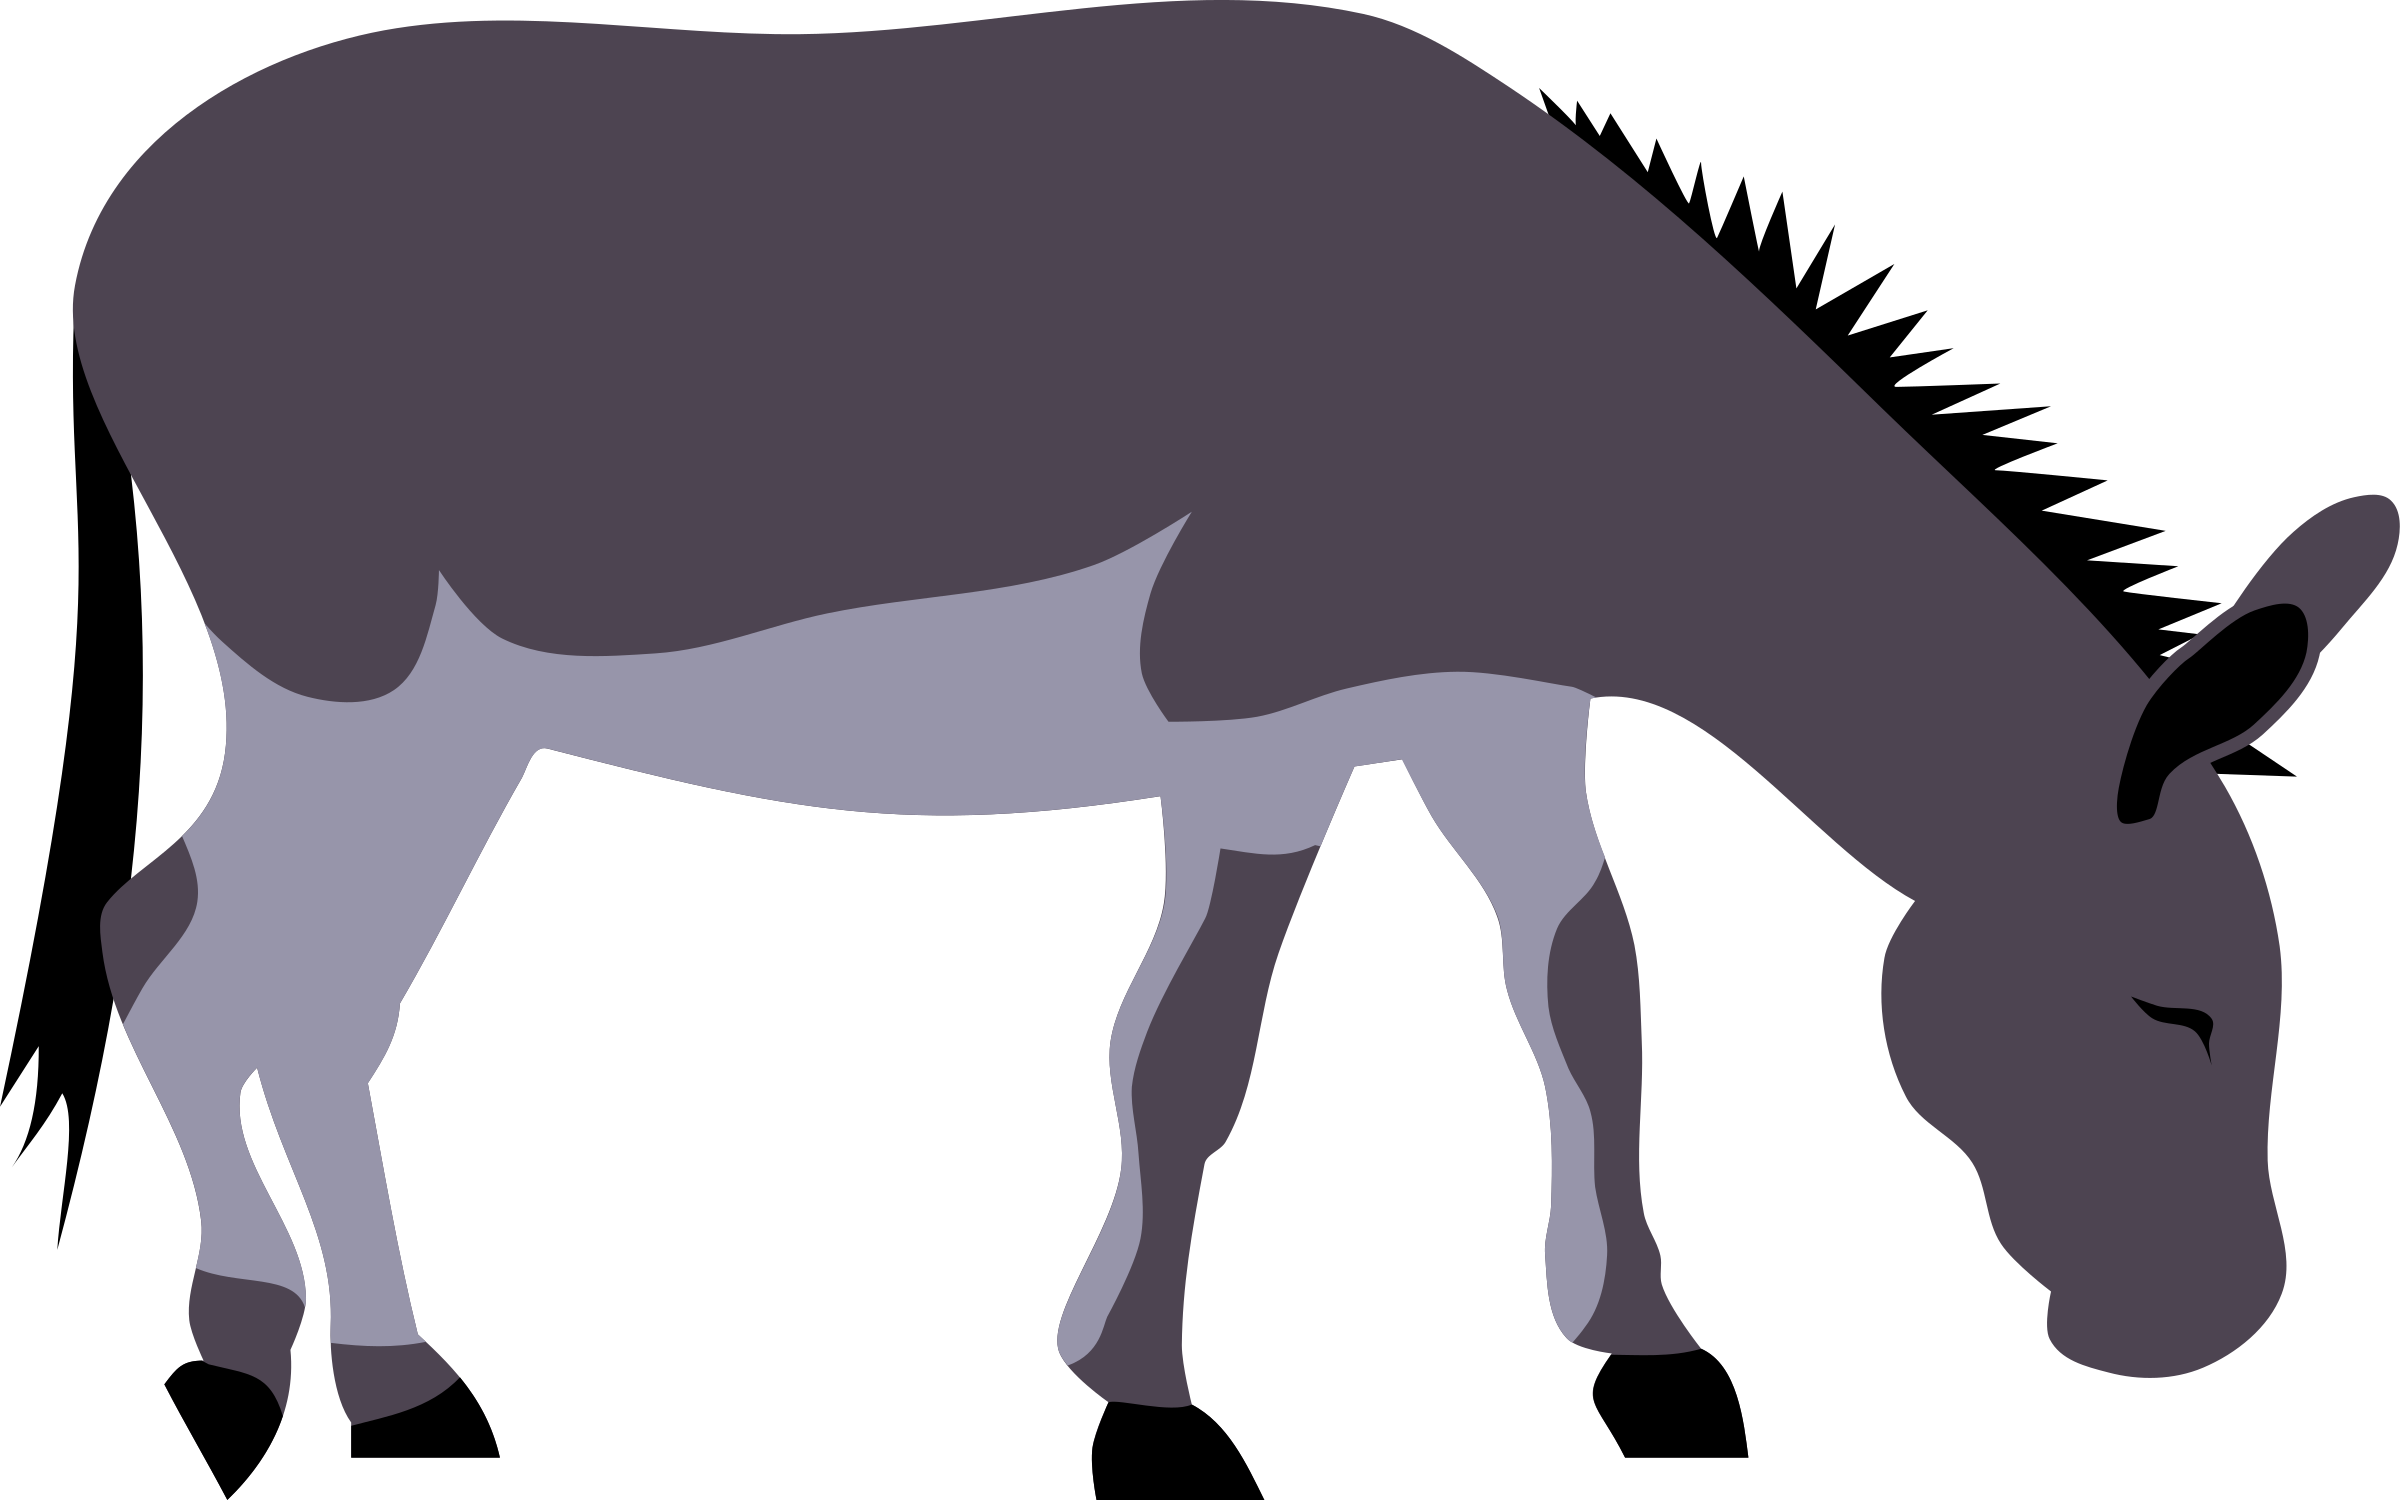 donkey silhouette clip art at getdrawings com free for personal rh getdrawings com clip art donkey and elephant clipart donkey